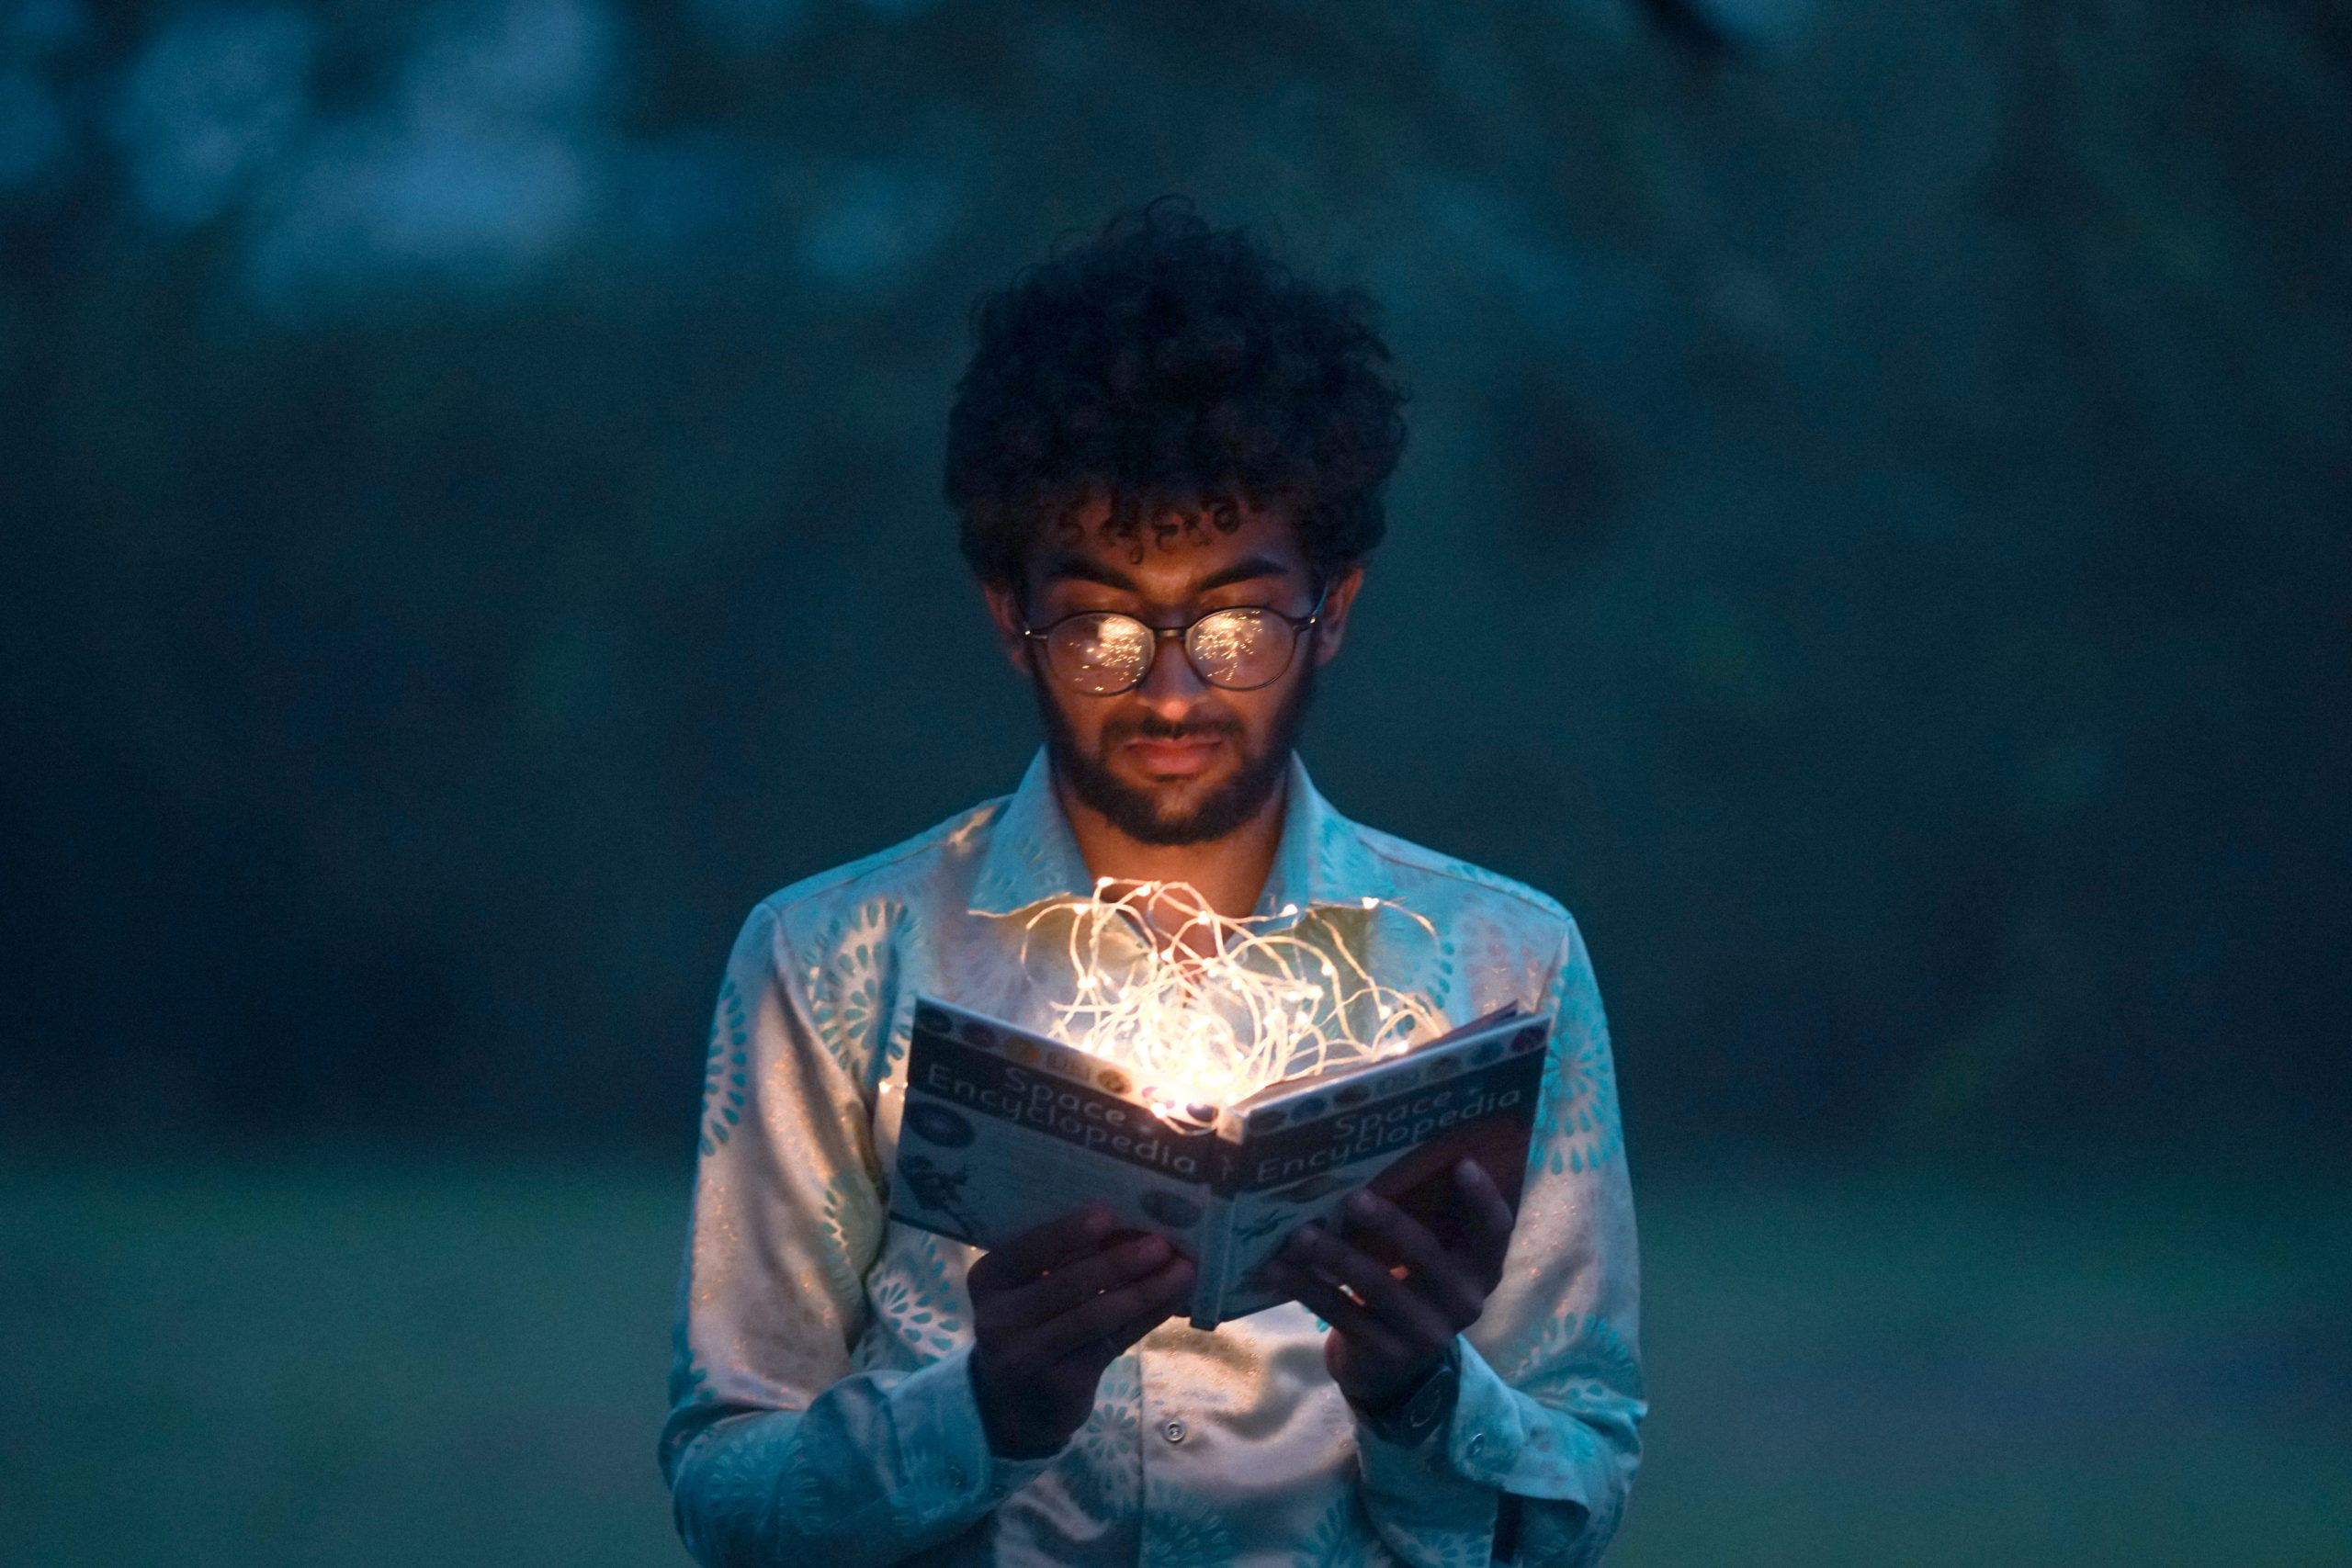 A man is outdoors and is holding a book open in front of him. The book is glowing, as if the contents are illuminating.